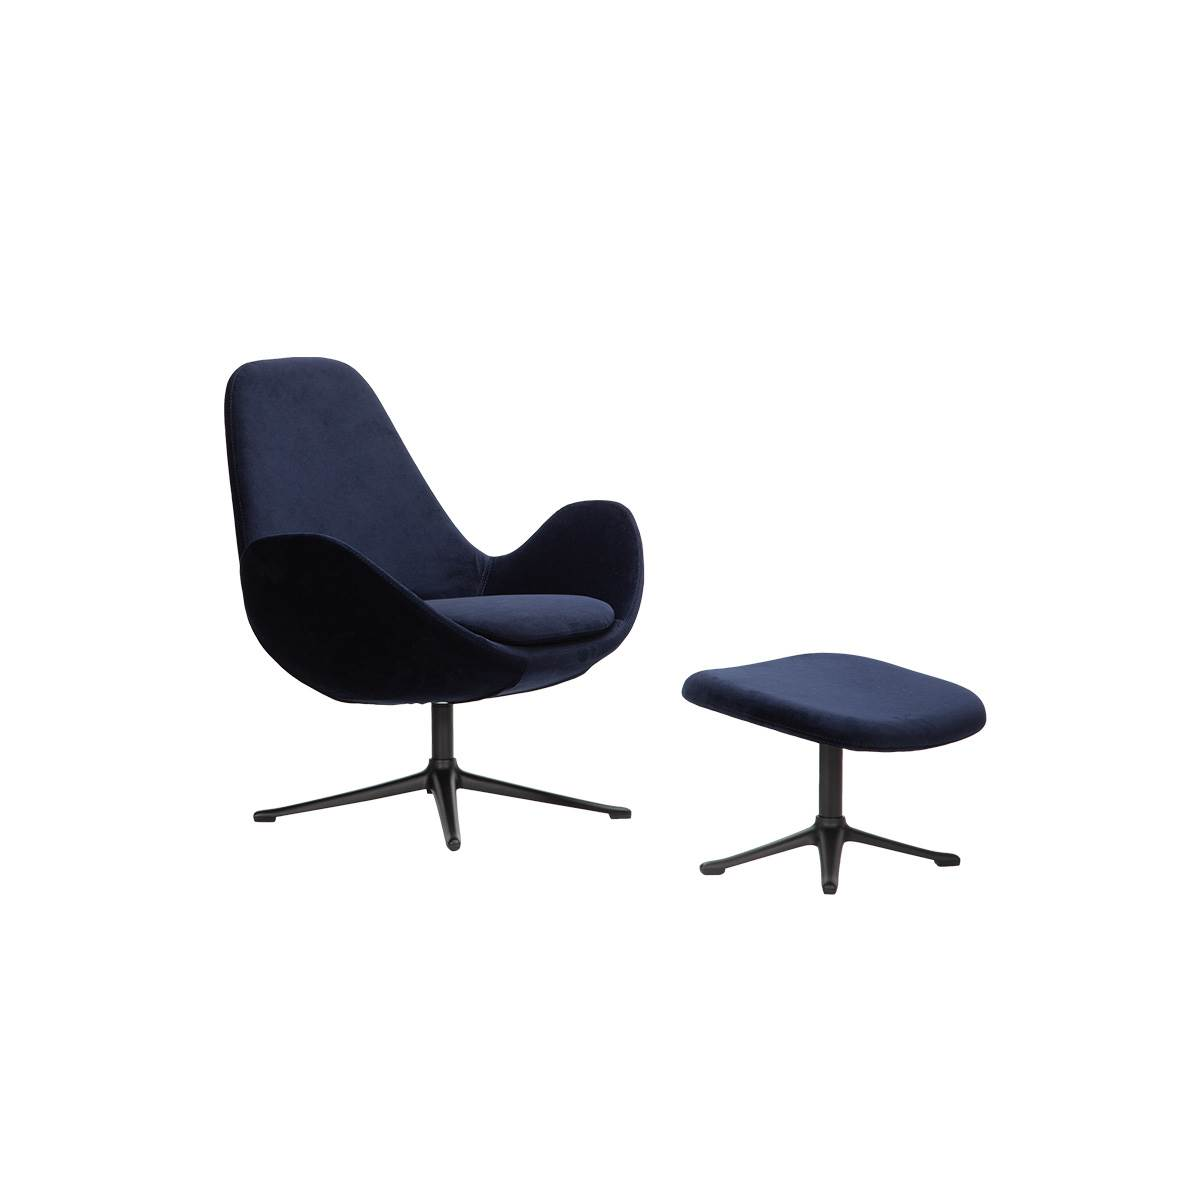 Theca Ghost fodskammel 2374 Dark blue super velvet